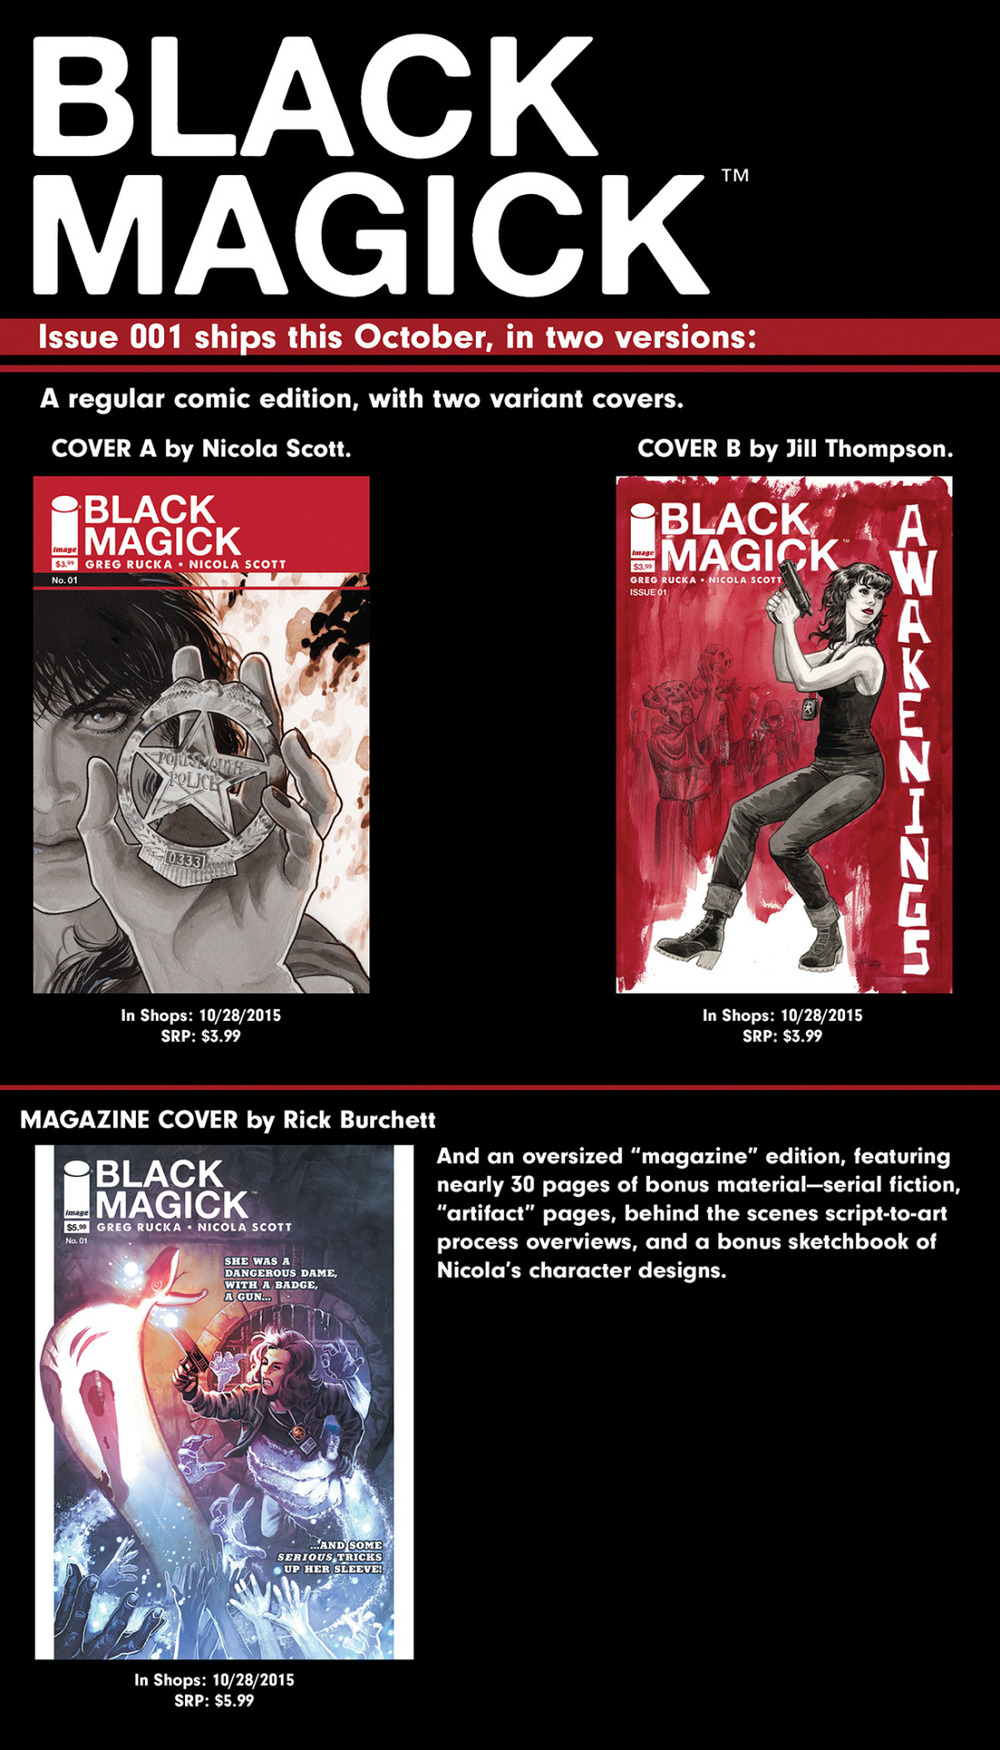 ruckawriter: blackmagickcomic: Good morning, gentle readers! BLACK MAGICK #1 FOC's THIS COMING MONDAY, OCTOBER 5! As the handy image, created by our hyper-talented designer Eric Trautmann, above shows, this comes in three flavors: A 40-page ad-free comic with a cover by Nicola Scott, featuring some fun bonuses, including part one of a new piece of fiction from Greg Rucka. A 40-page ad-free comic with a cover by Jill Thompson, with all the same goodies as above. A 64-PAGE AD-FREE MAGAZINE-SIZE COMIC (I put that in all caps because it's literally and figuratively huge and we're all very proud of it), featuring a cover by Rick Burchett and Romulo Fajardo, with ALMOST 30 PAGES OF BONUS MATERIAL. Retailers, make sure you get those orders in, and readers, talk to you friendly neighborhood comic shop and ask them to pre-order the book for you, so you guarantee yourself a copy. And please feel free to utilize the handy ask button that's up there somewhere if you have any questions or comments. See you in October! OK, two things. First, there is a BLACK MAGICK tumblr, that is being curated by our amazing editor (editrix? I just like using words with 'x's in them…), Jeanine Schaefer ( karatemonkey ). You should totally follow that, because it might have some cool stuff about the comic, but mostly because Jeanine is Awesome, and she didn't pay me to say that about her or anything and I swear I'm working as fast as I can but a lot of work stacked up while I was in Australia and I'm behind… Thing Second, there seems to have been some sort of confusion with Diamond as to what covers were being offered and where and how. So the thing, here, is that these are the three versions of the book that are being offered for sale. These have always been the three versions of the book that we were planning to offer for sale. Regular comic A - 40 pages, cover by Nic. Regular comic B - 40 pages, cover by Jill Thompson. Magazine version - 64 pages, cover by Rick Burchett. I know, I just repeated exactly what was in the initial post. I believe in being thorough. We are, as you might imagine, very proud of these. Hope you dig 'em!